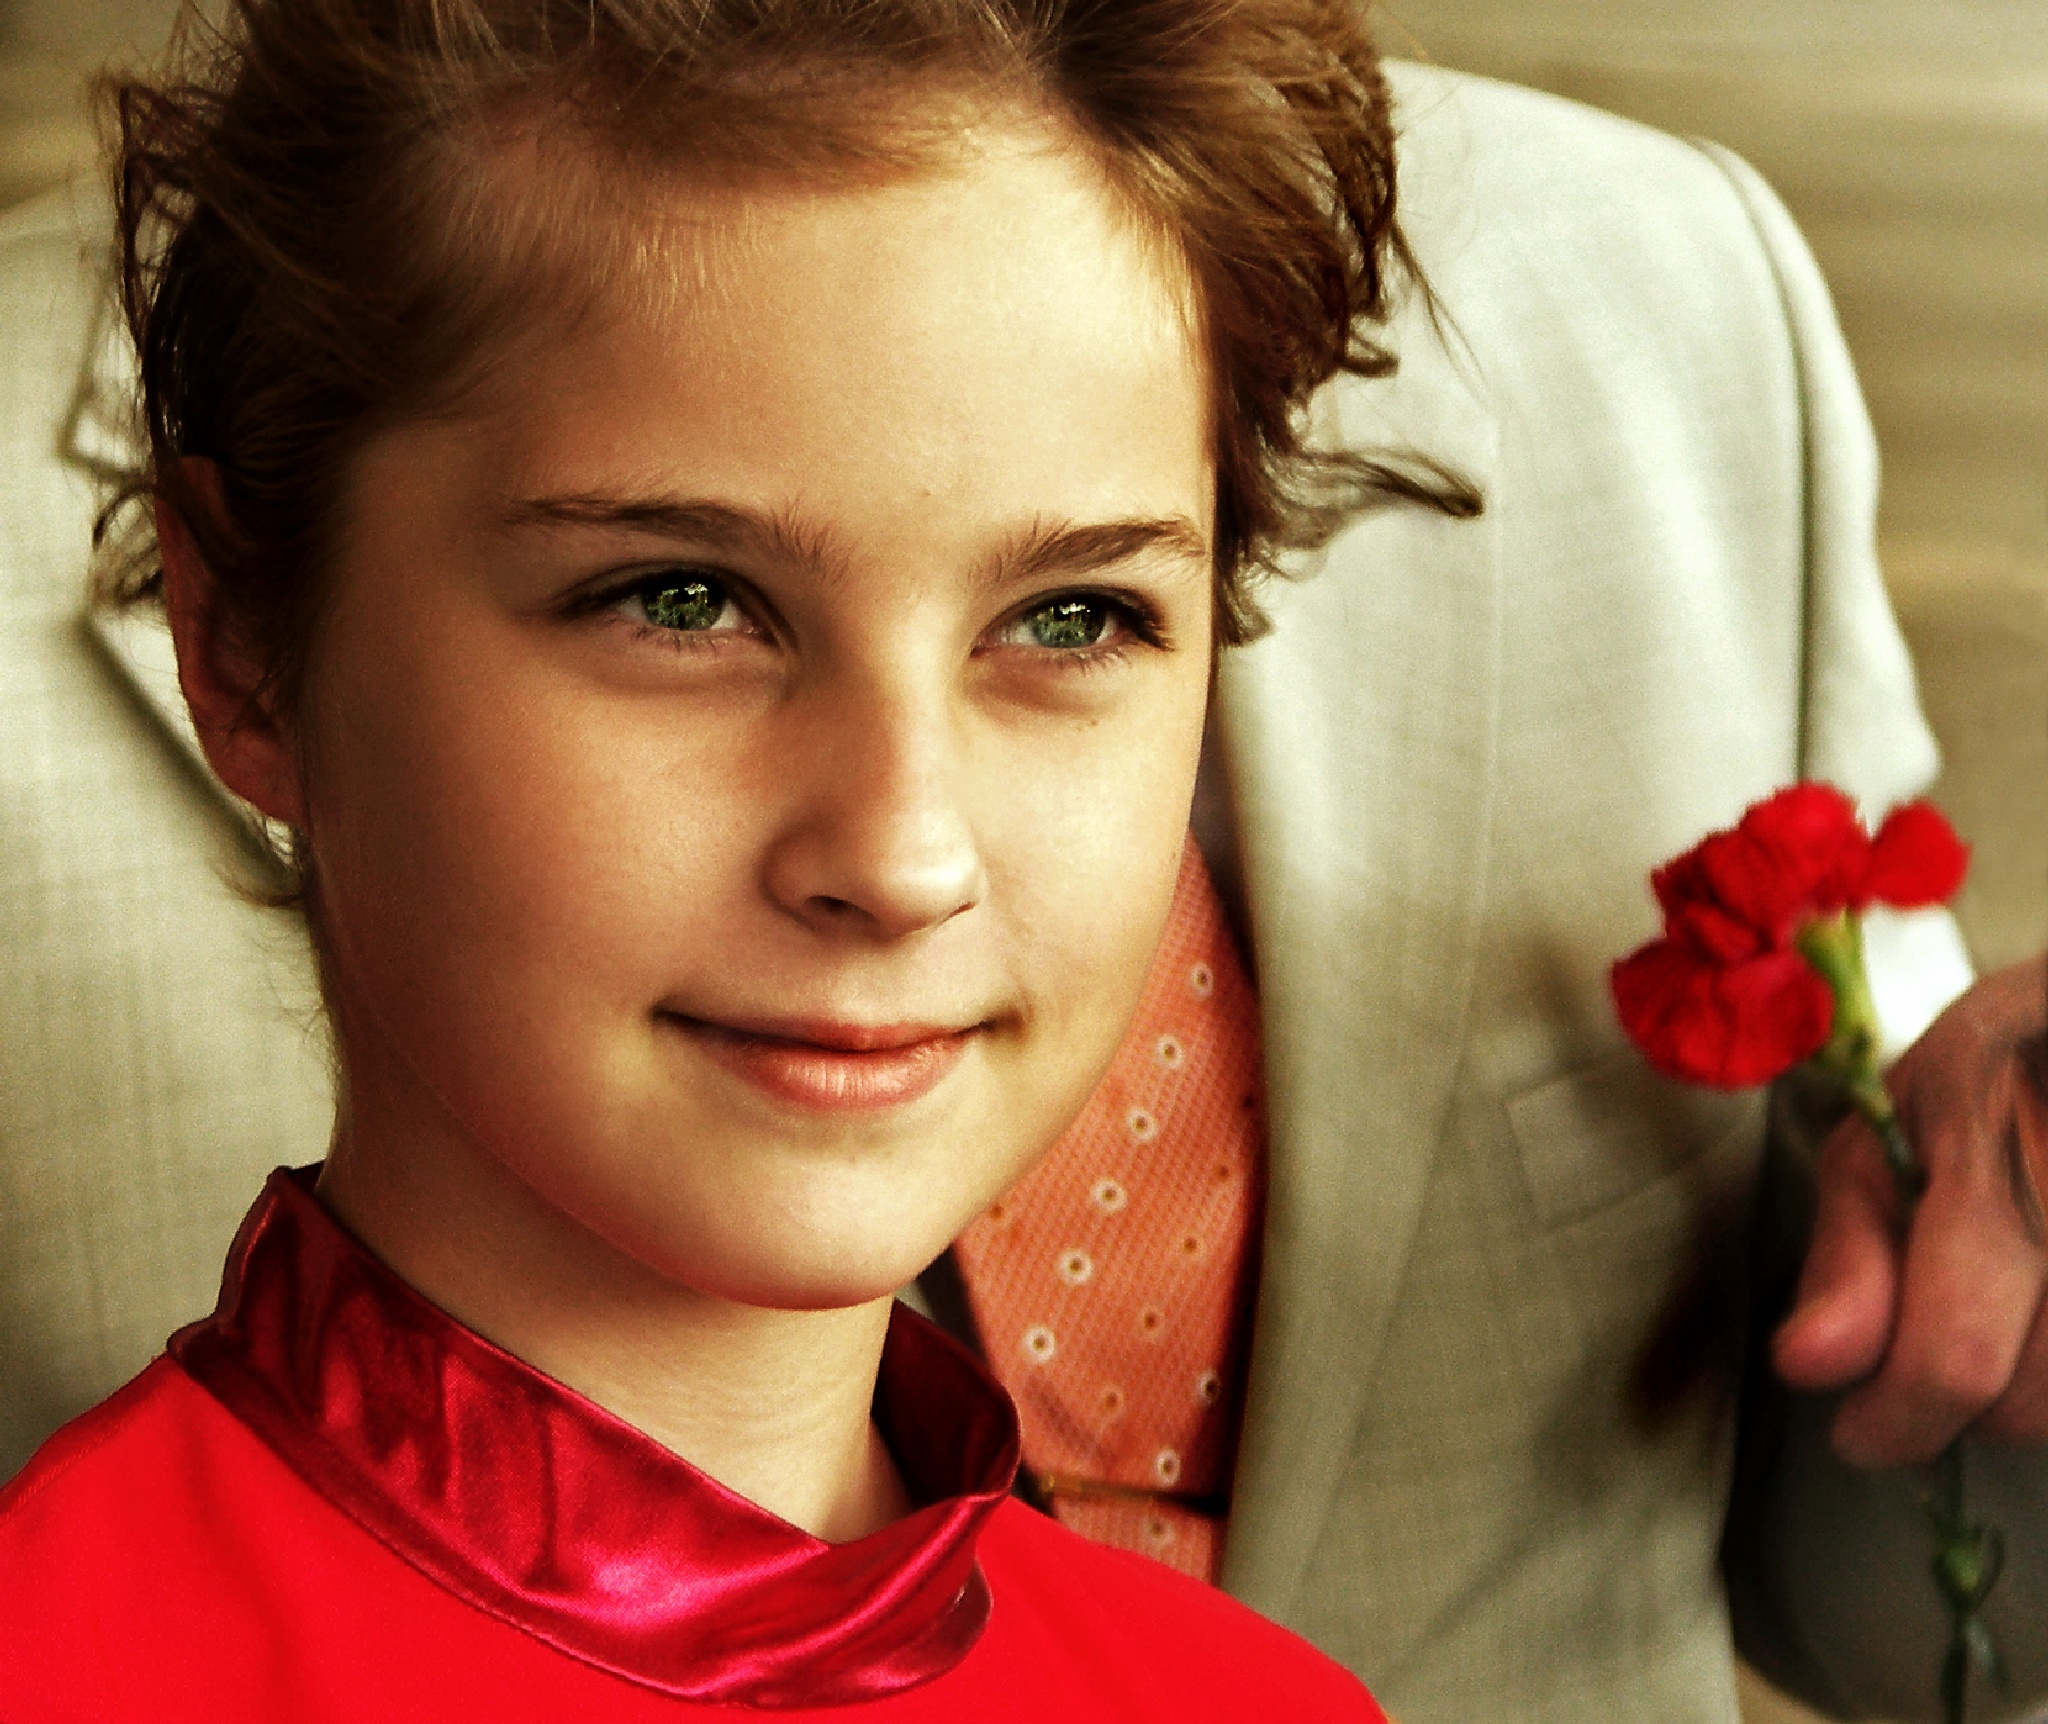 Portrait of a girl in the background of jacket mayor, who is holding a bouquet of red carnations by Сергей Юрьев